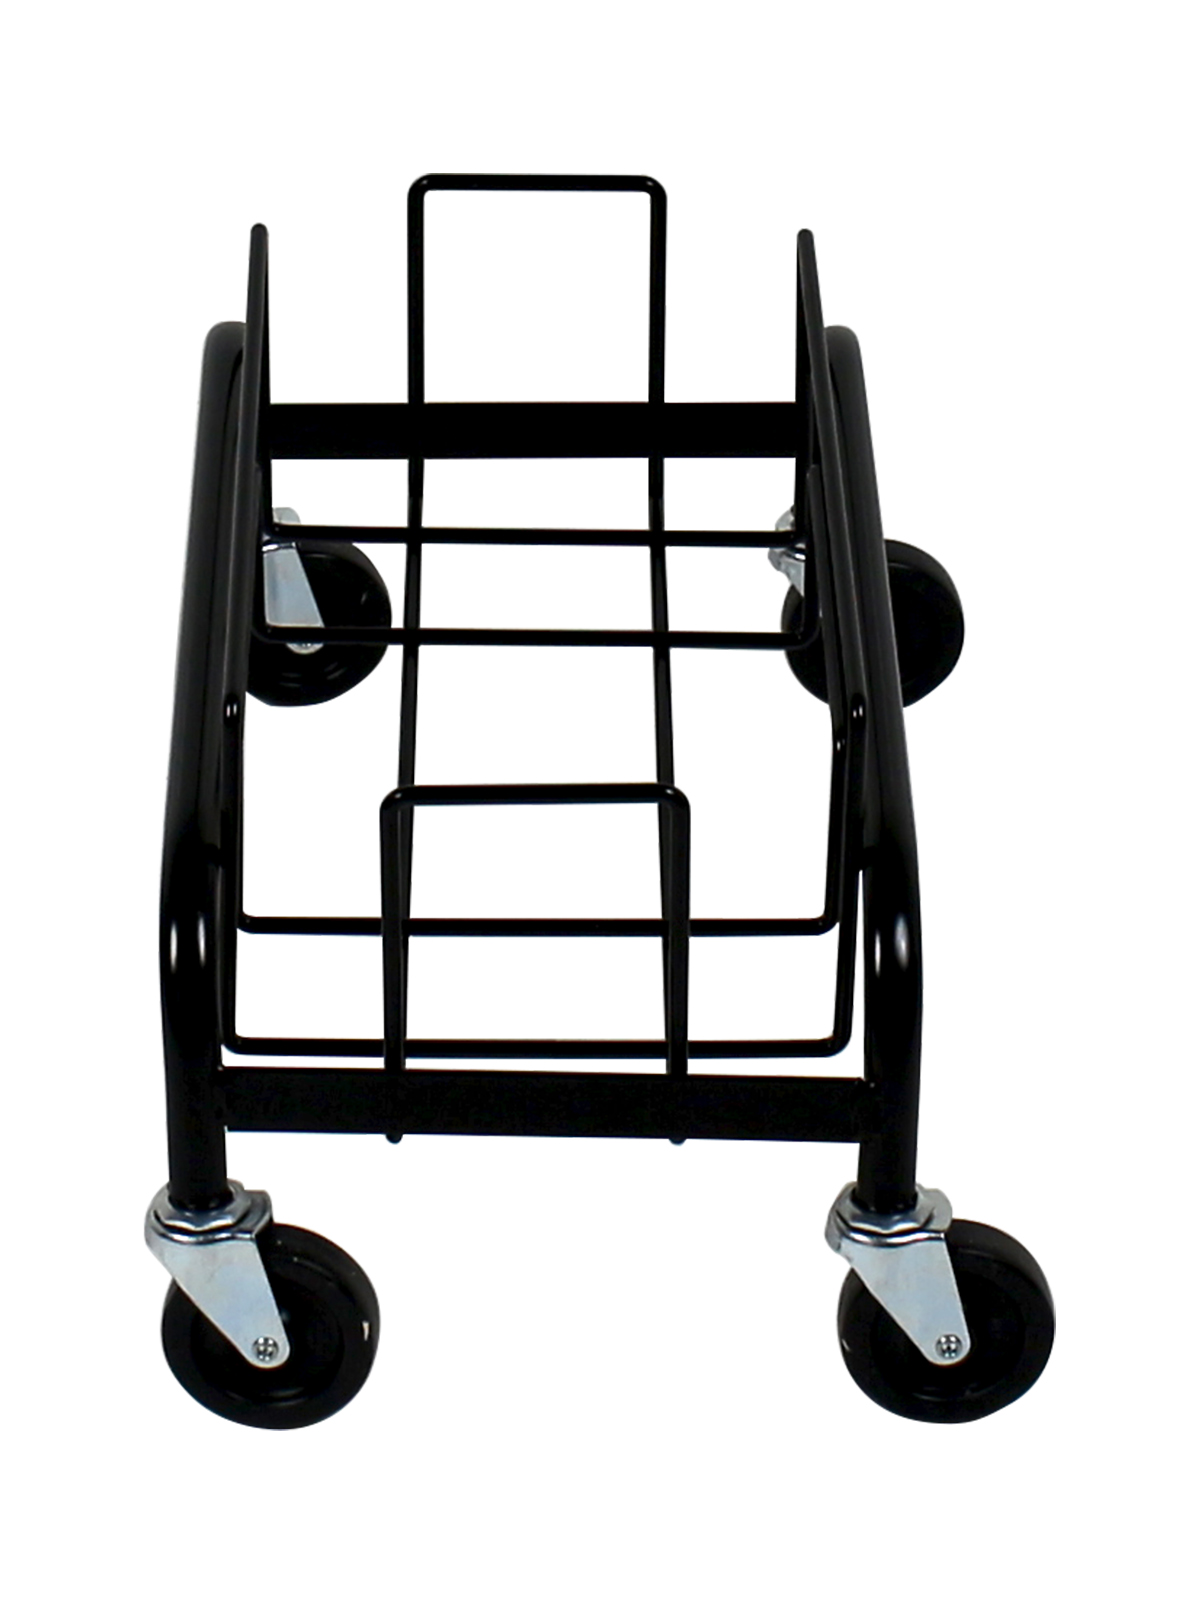 WASTE WATCHER® - SINGLE DOLLY [1 DOLLY, 4 CASTERS] - BLACK